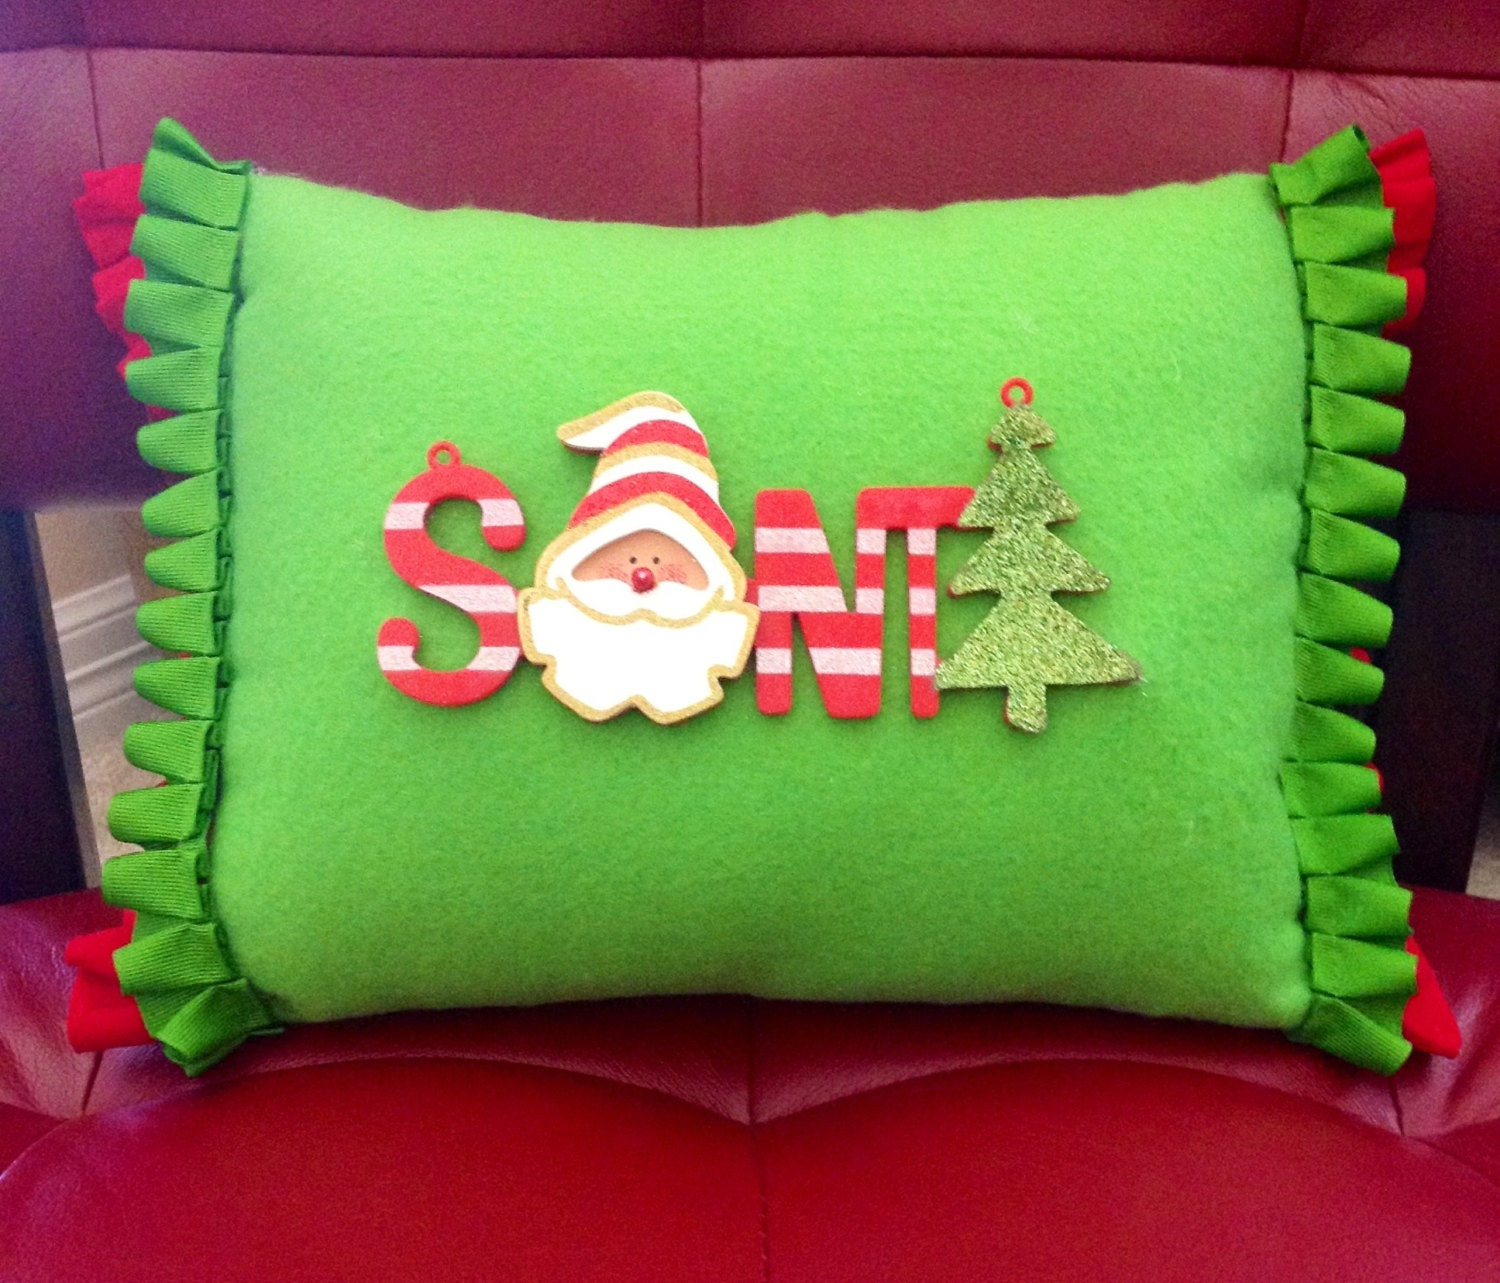 Cute Tumblr Pillows Etsy : Cute Handmade Holiday Pillow by NaeMakeSomeCraftShop on Etsy